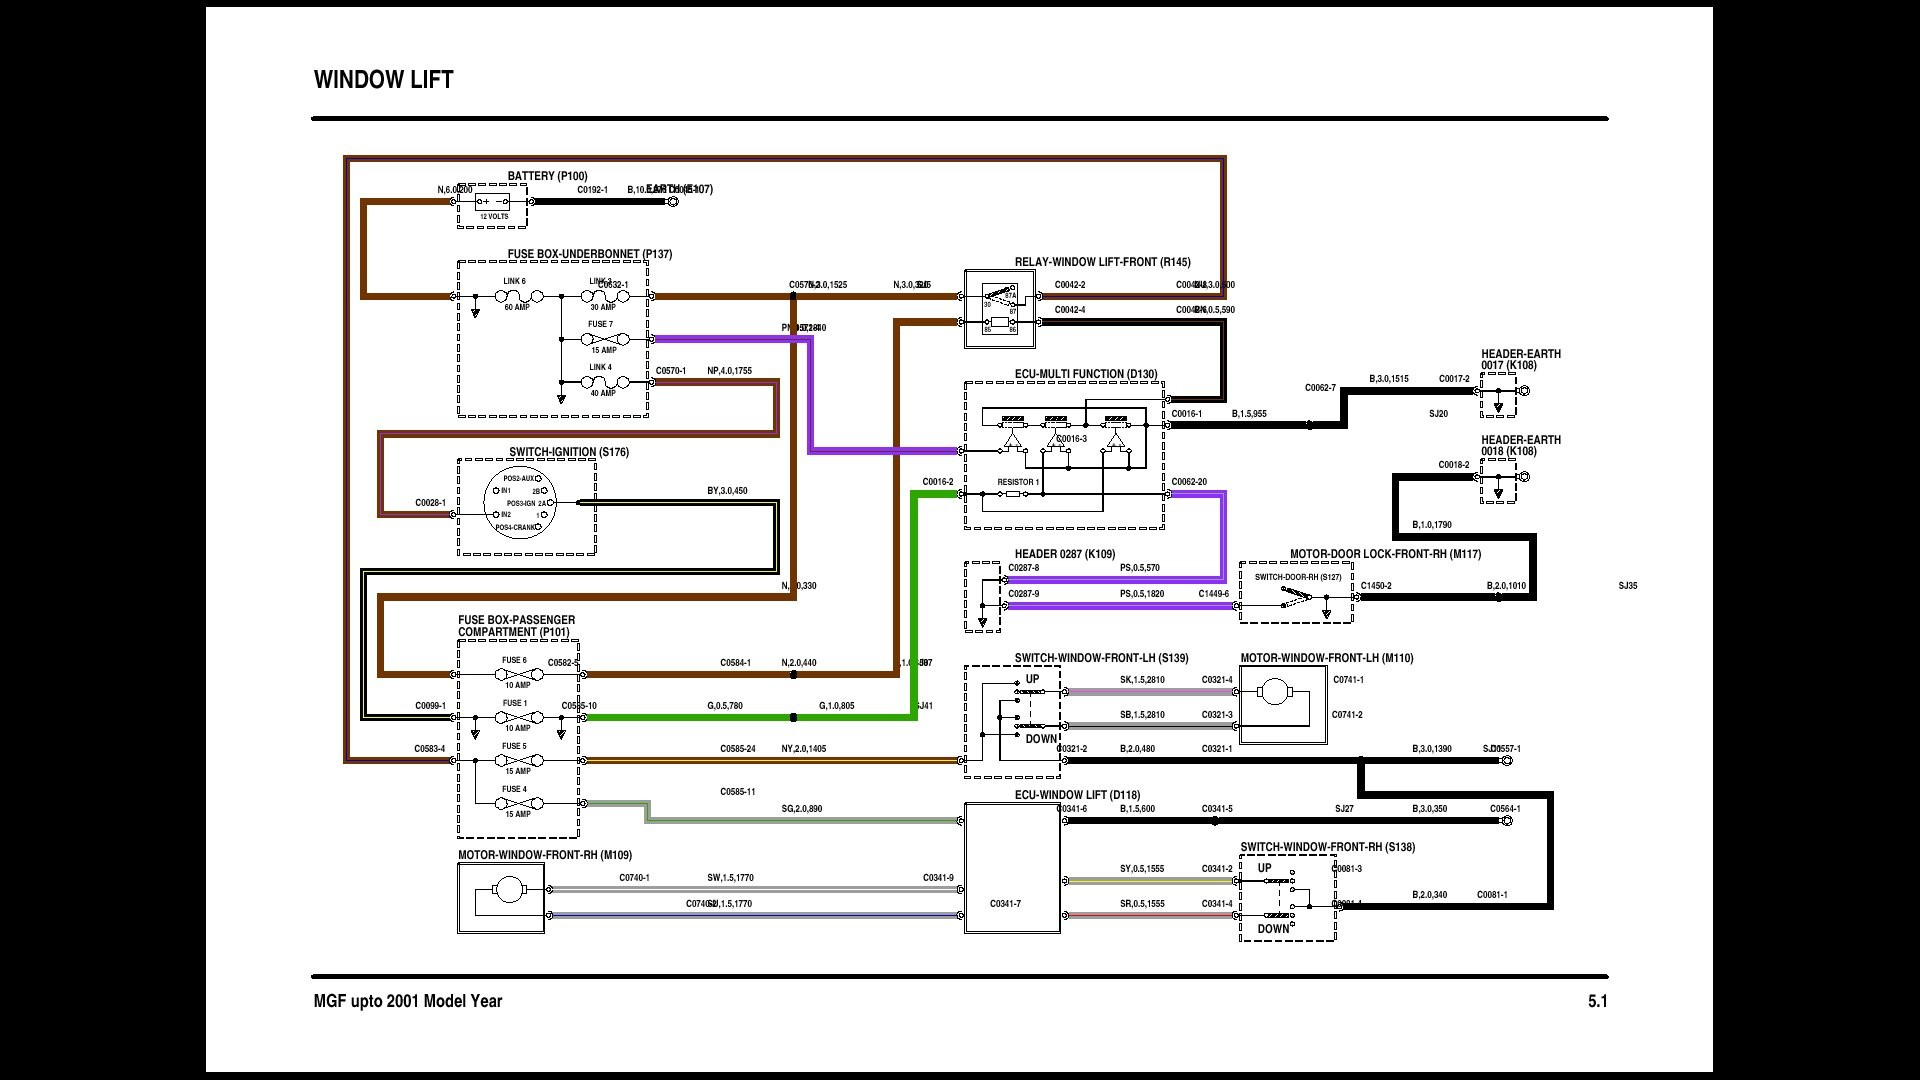 rover 25 horn wiring diagram rover 25 wiper wiring diagram #6